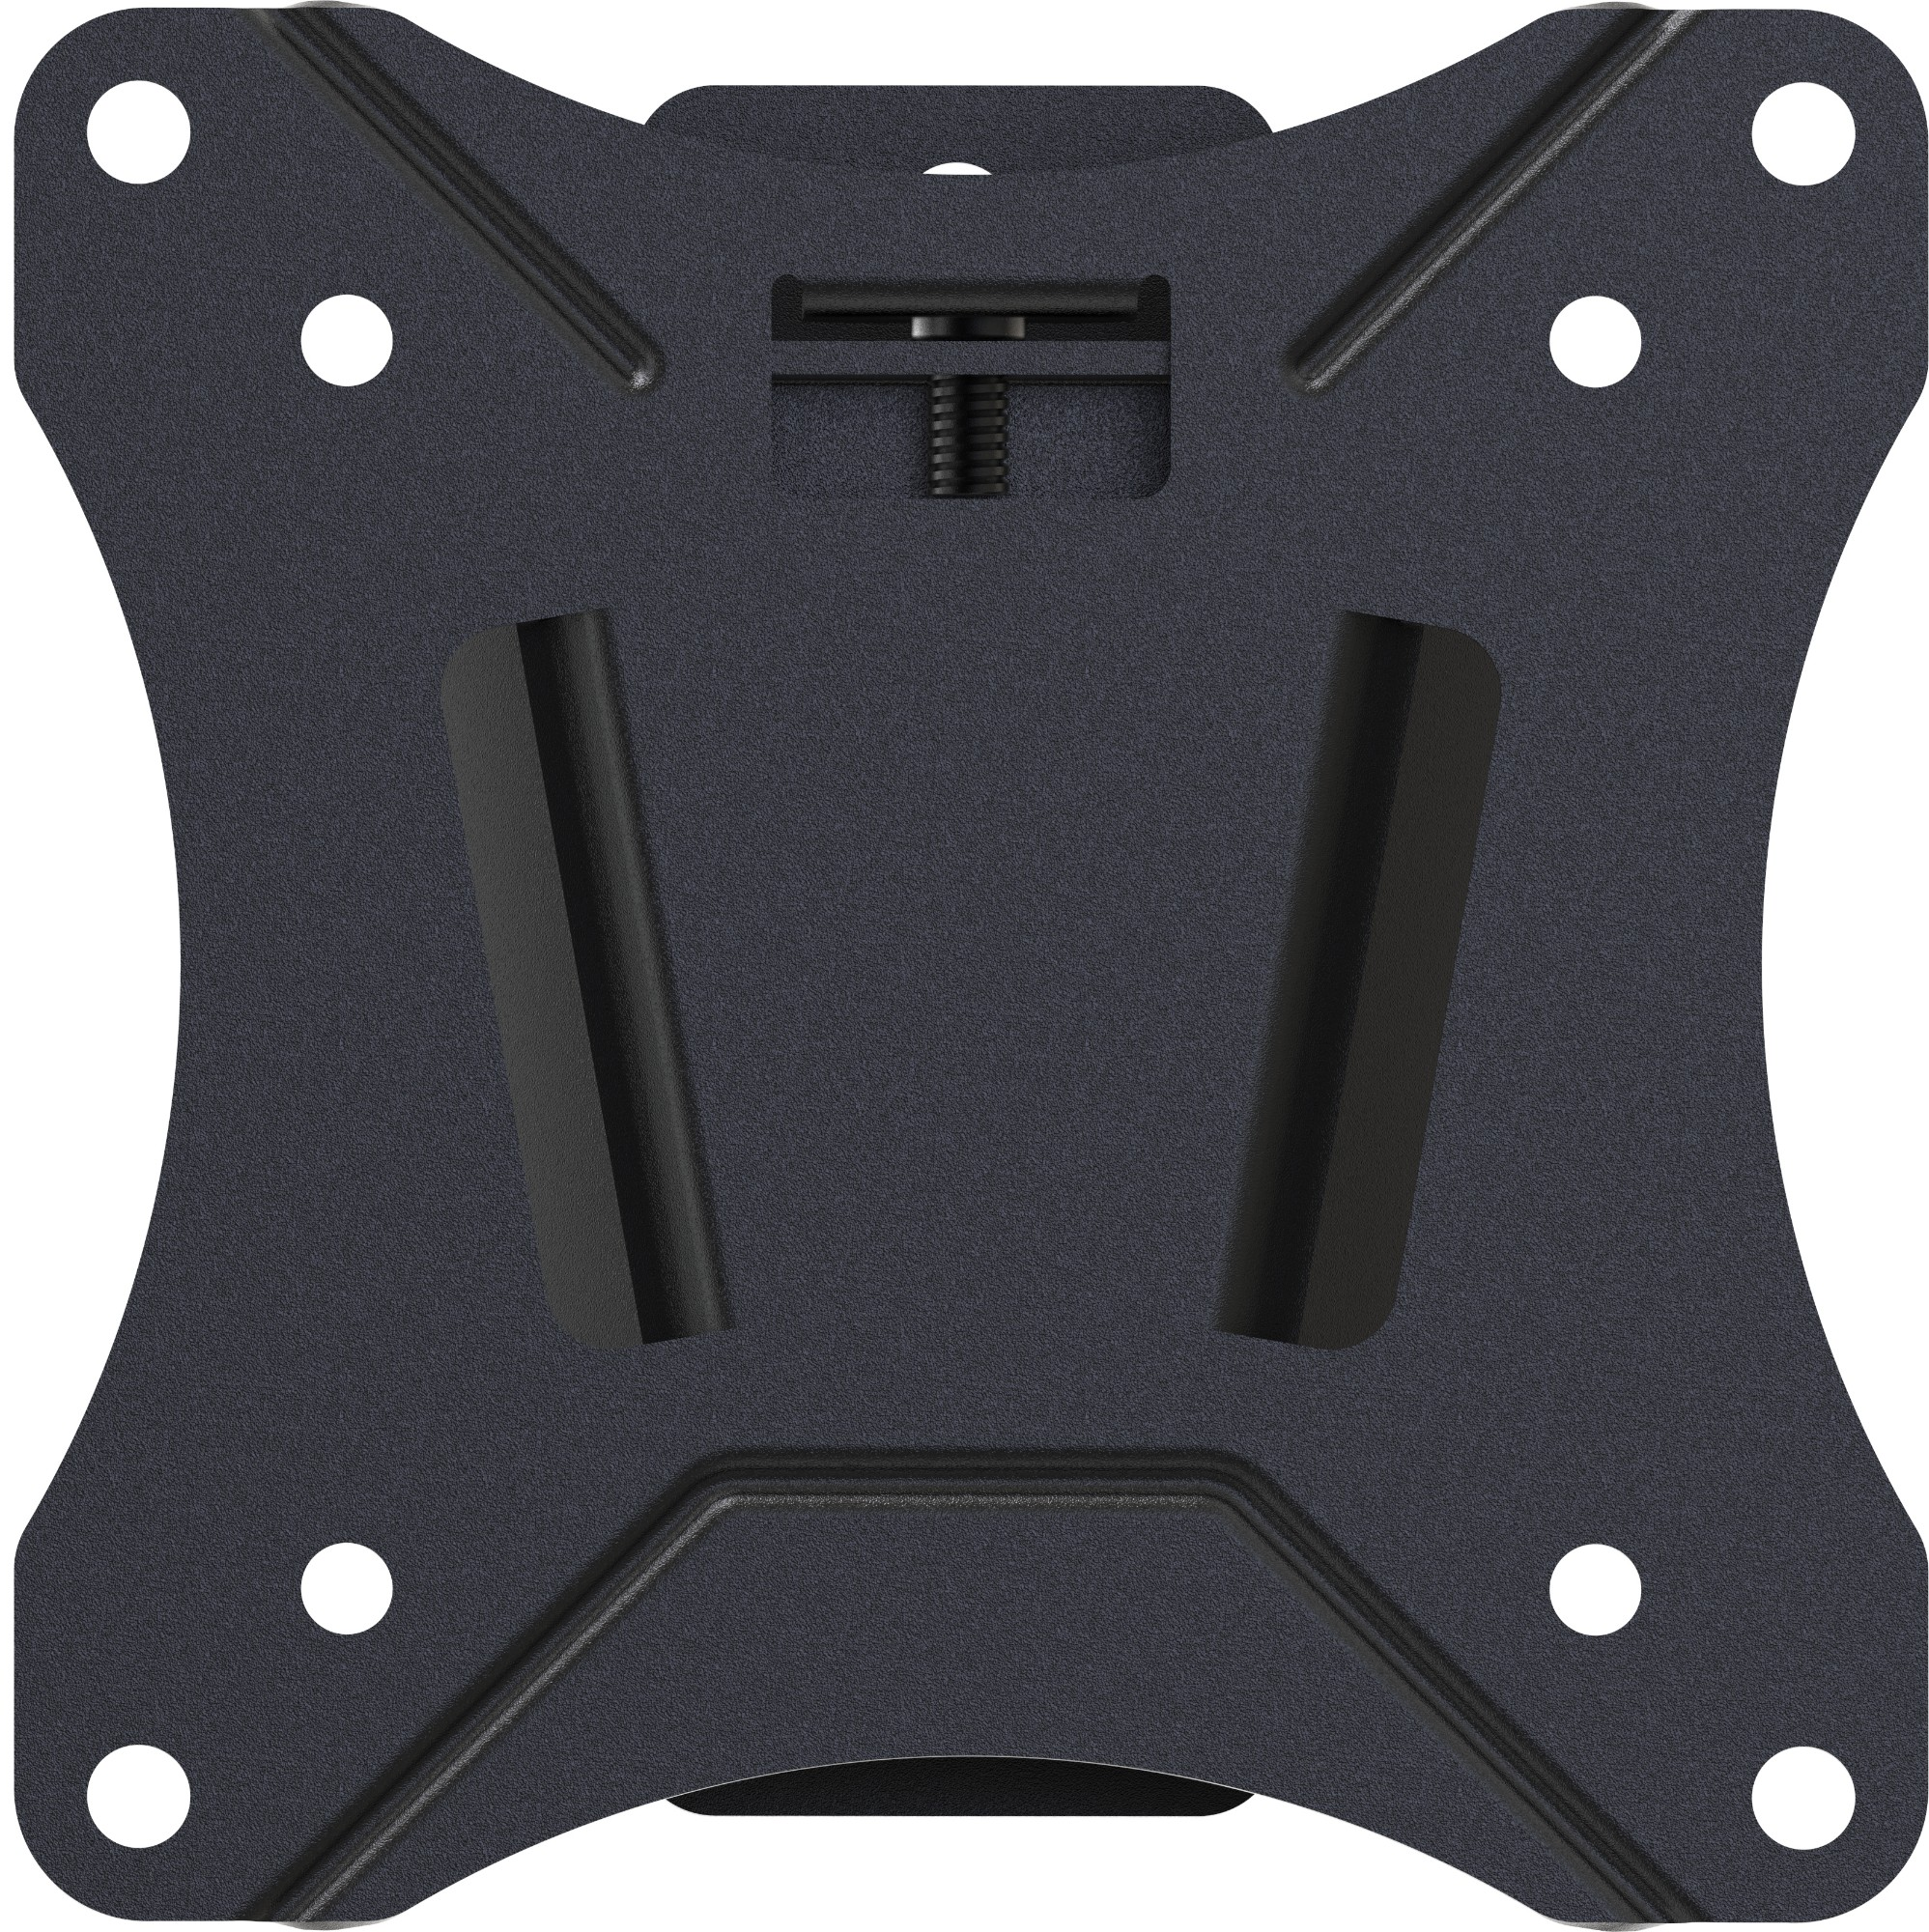 "Vision VFM-W1X1TV2 monitor mount / stand 86.4 cm (34"") Black"